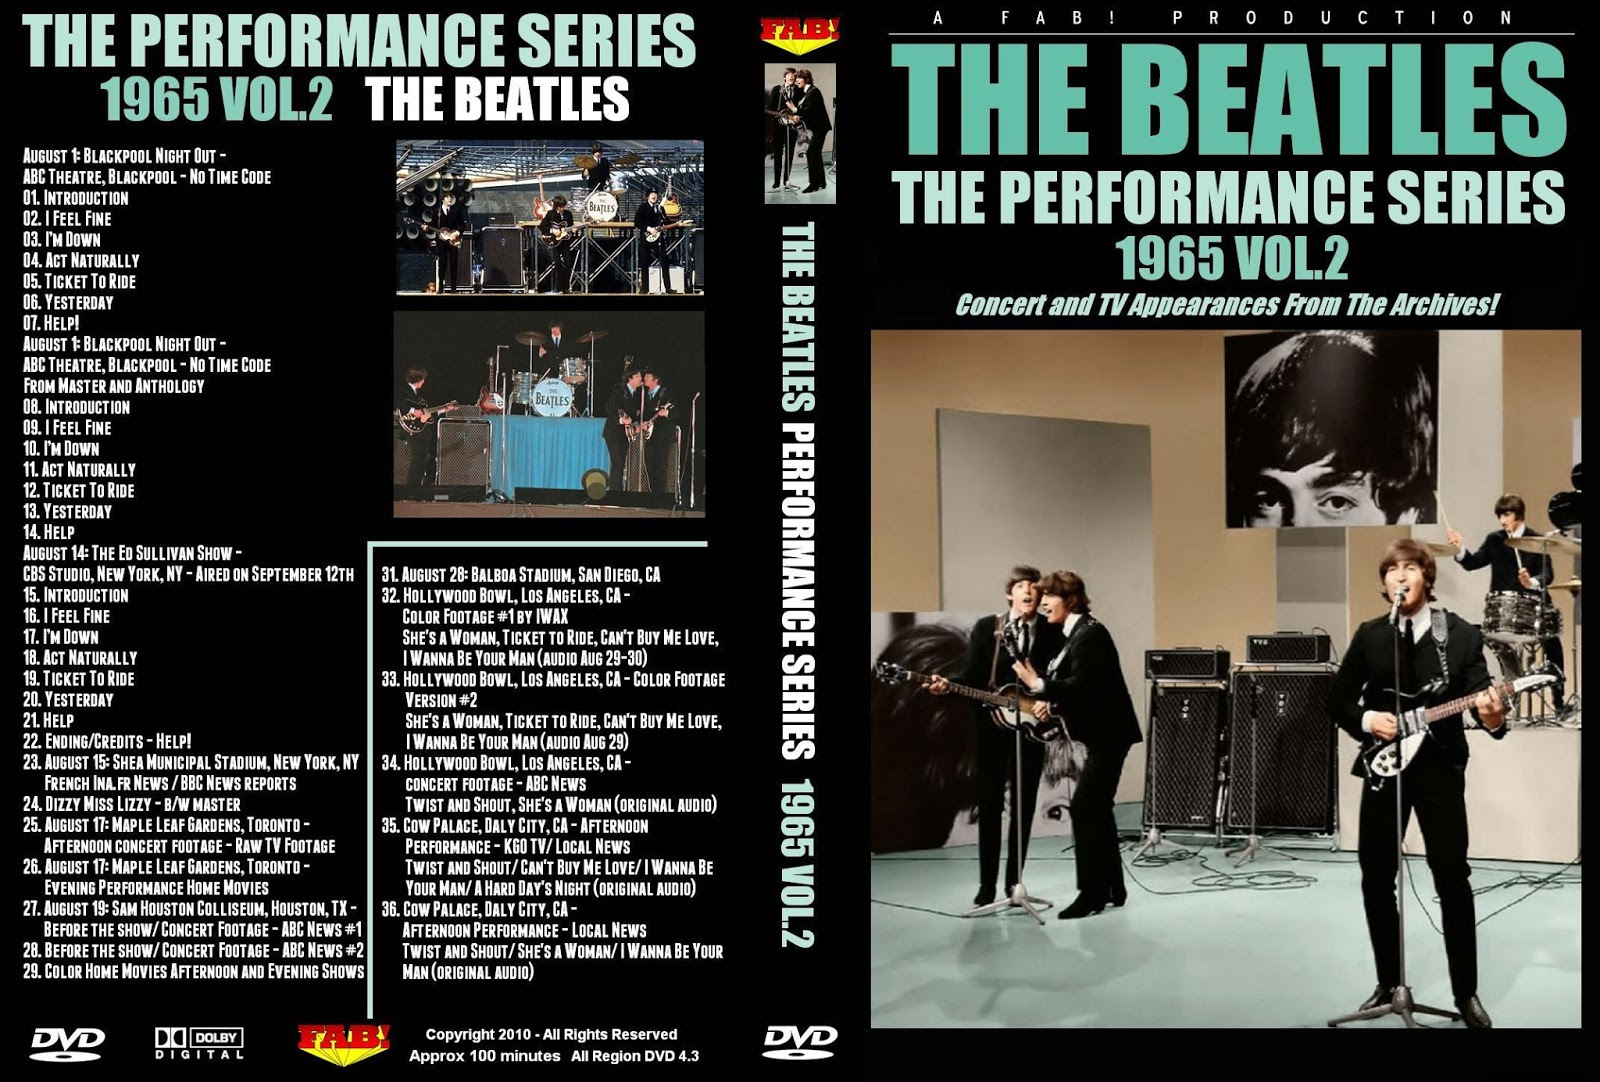 Music TV and Video Archives: THE BEATLES on DVD